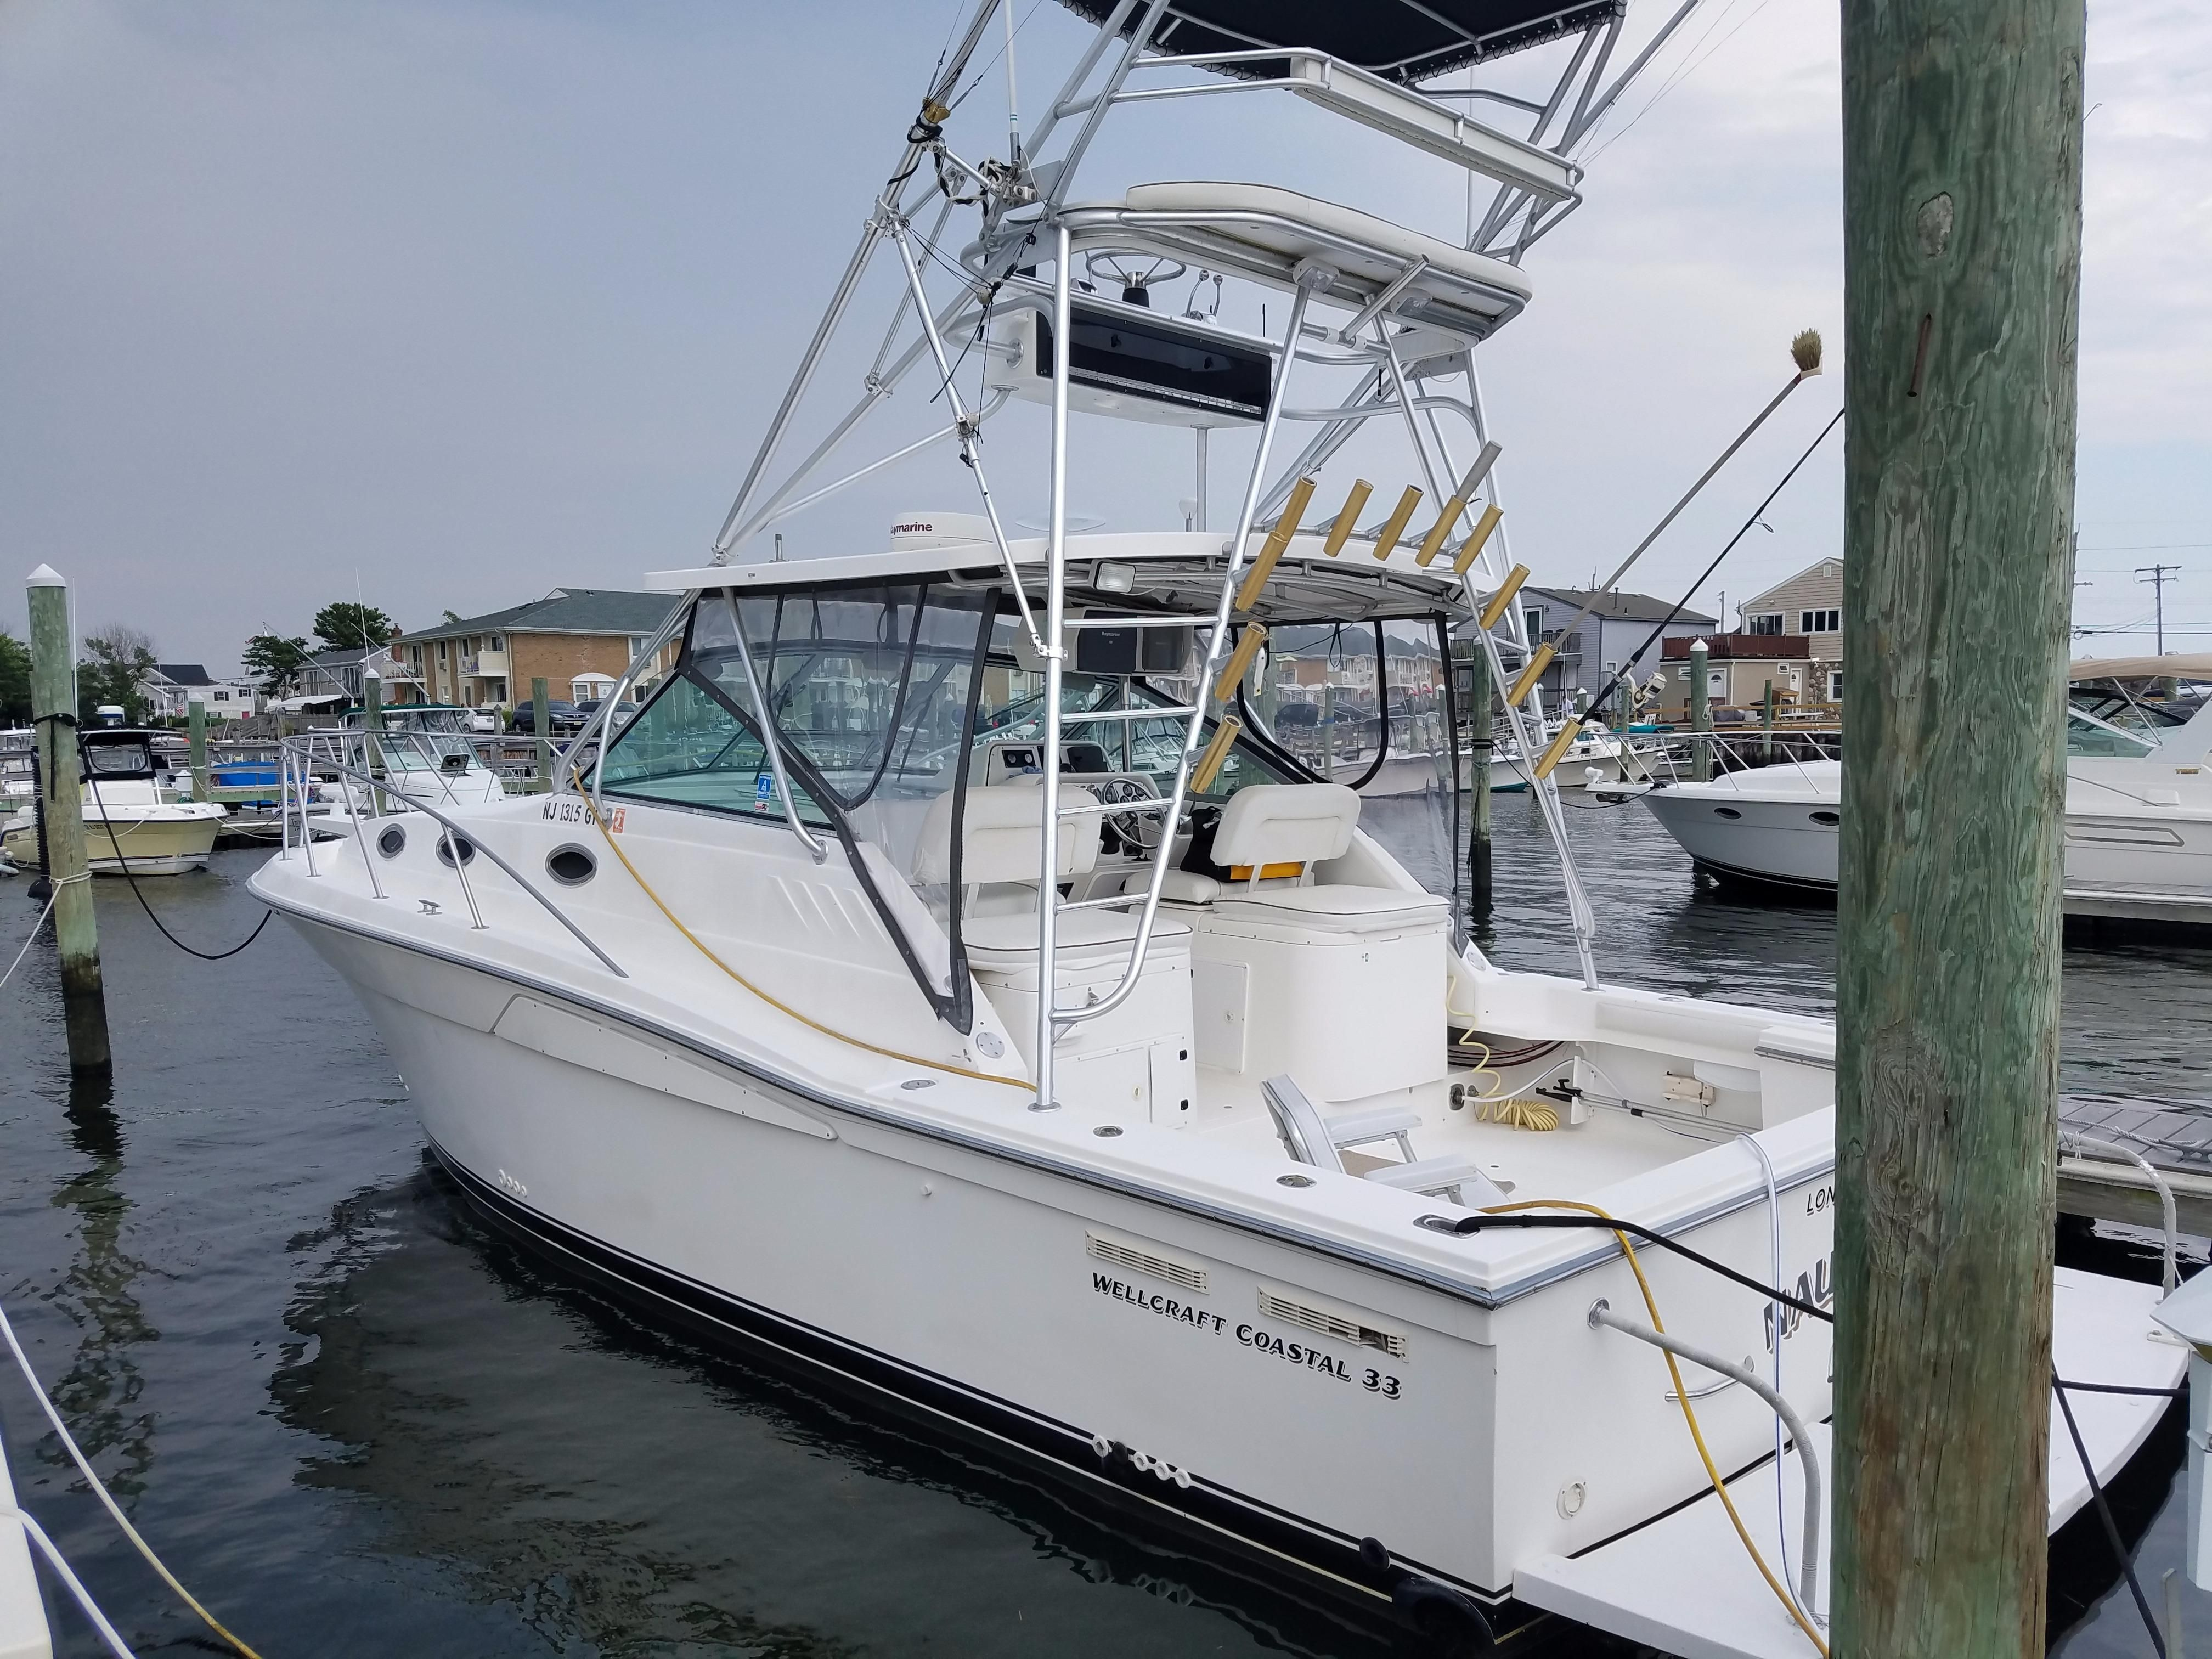 1999 Wellcraft 330 Coastal Power New and Used Boats for Sale